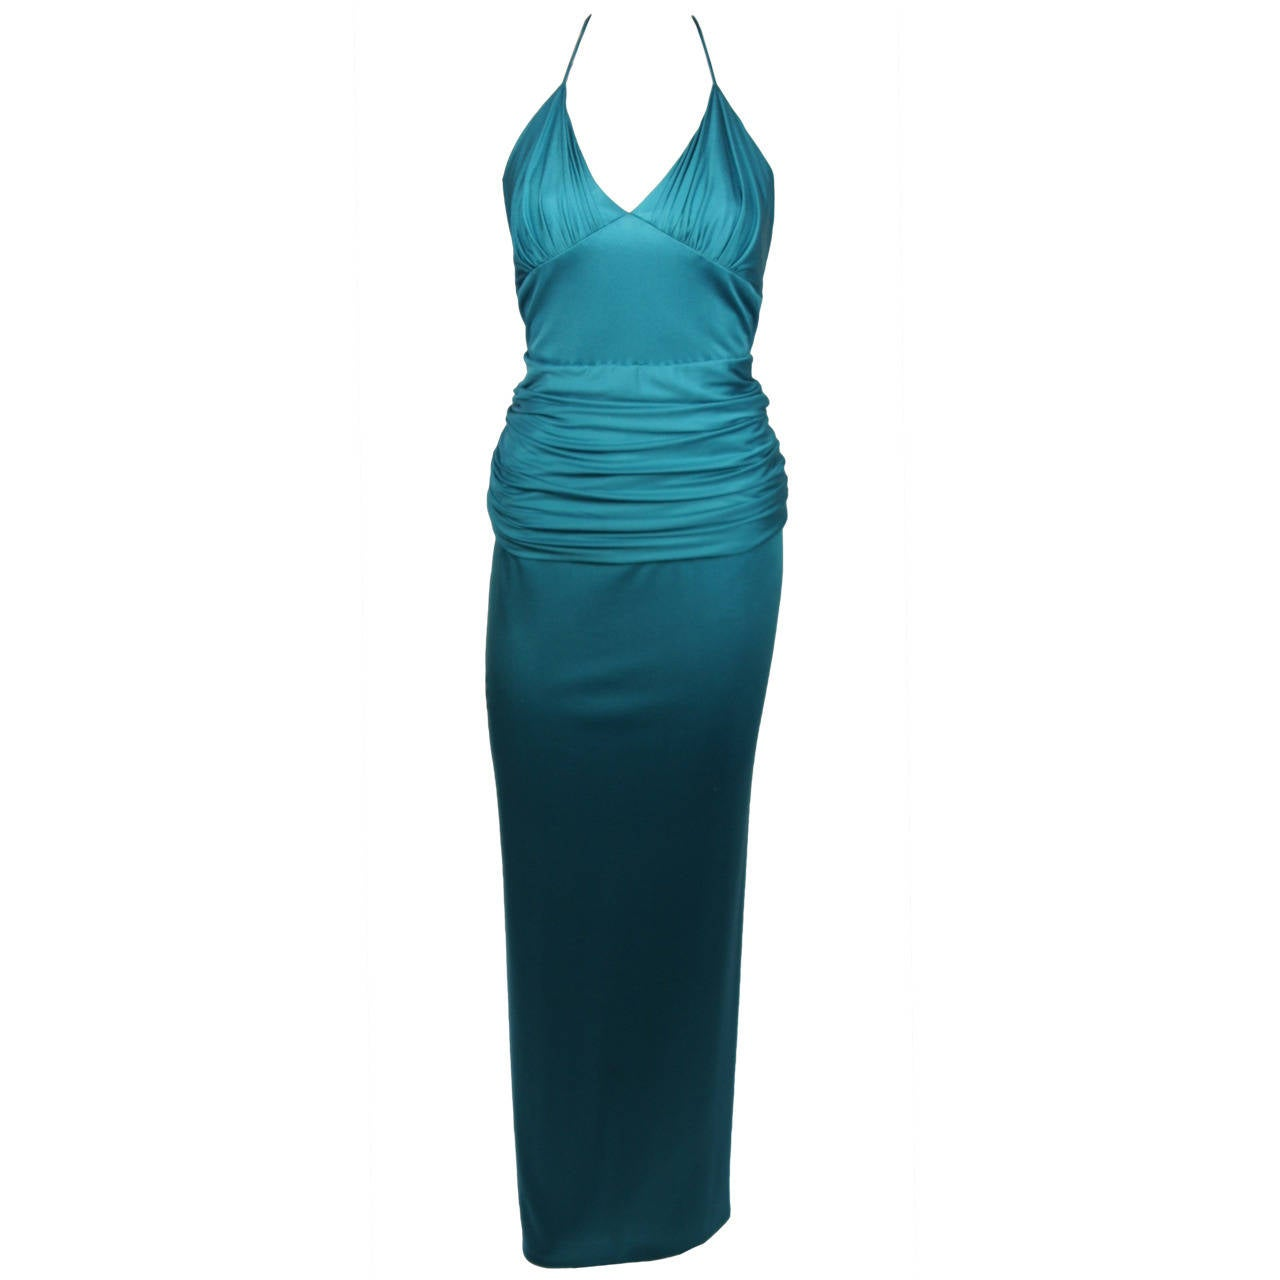 Elizabeth Mason Couture Custom Turquoise Silk Jersey Draped Gown size 4